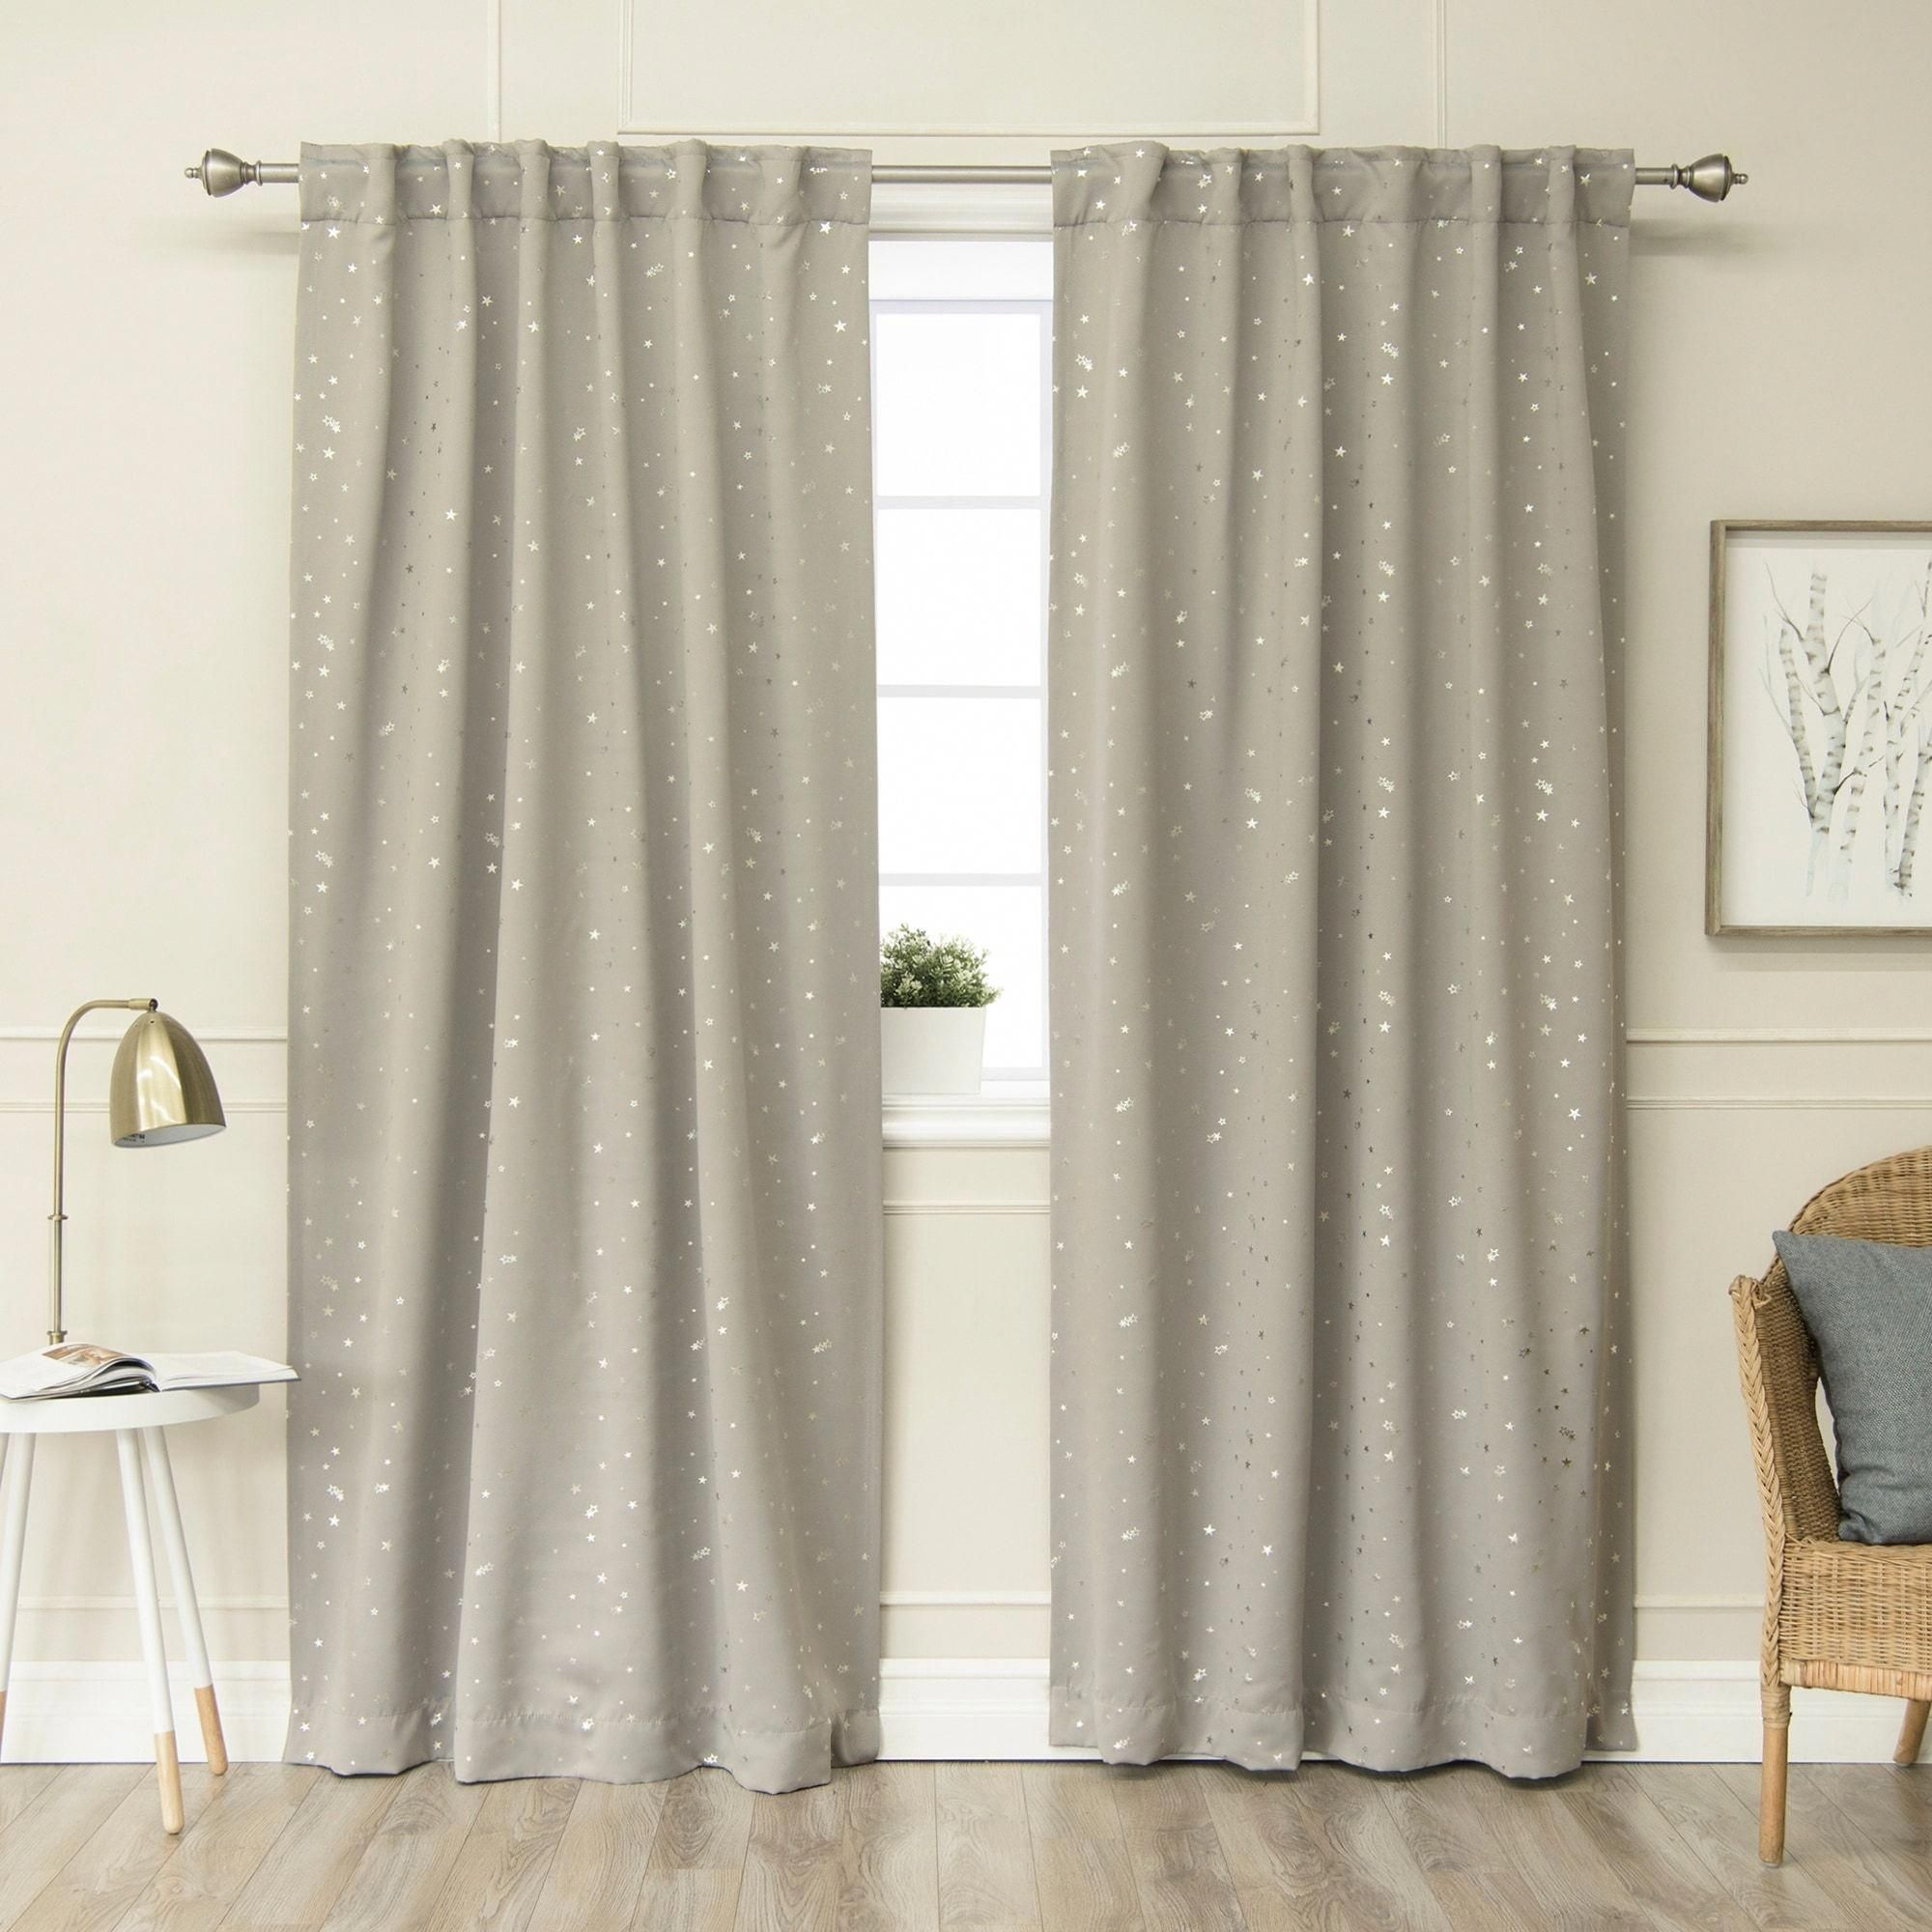 Aurora Home Star Struck Insulated Thermal Blackout 63 Inch Curtain